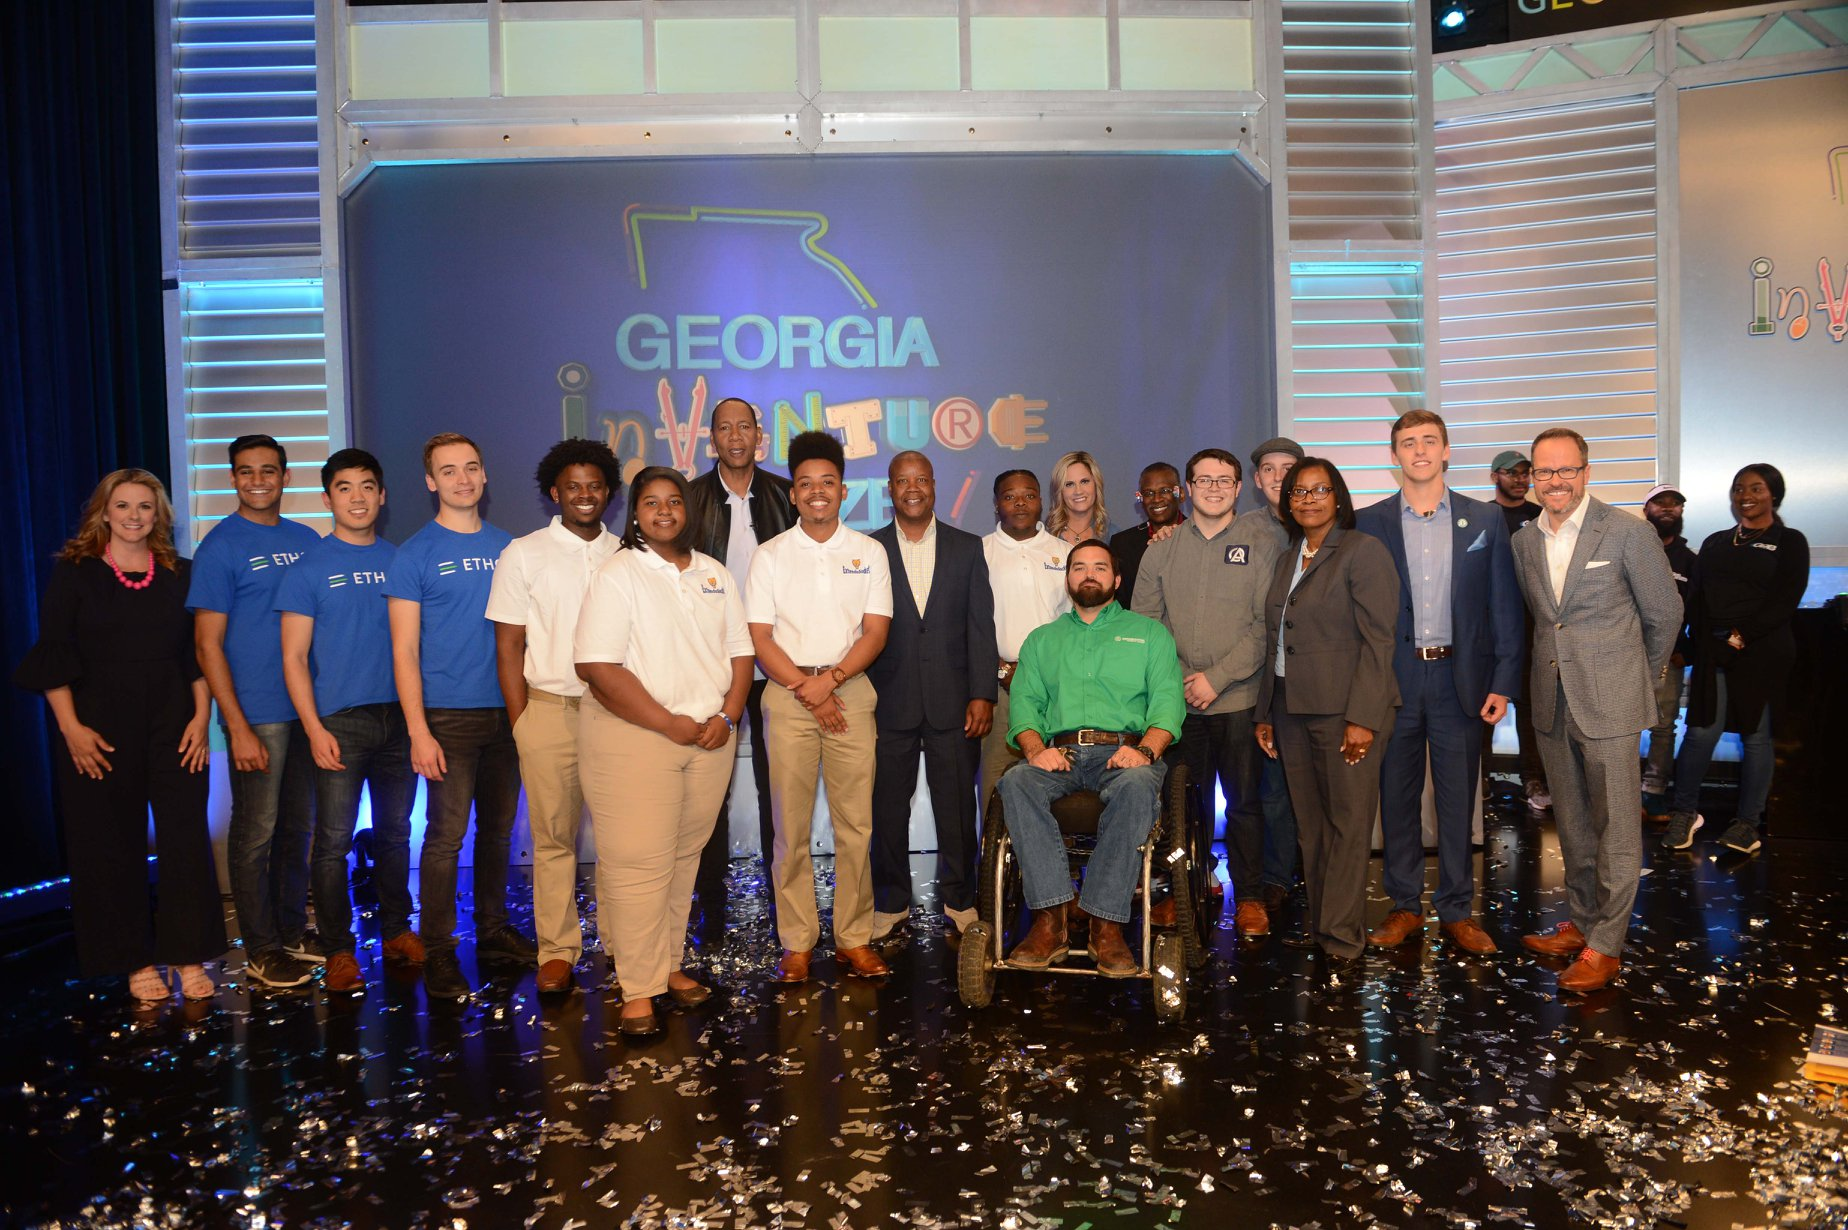 All five finalist teams, along with the panel of judges, host Mark Curry, and the Georgia Chamber's Chris Clark